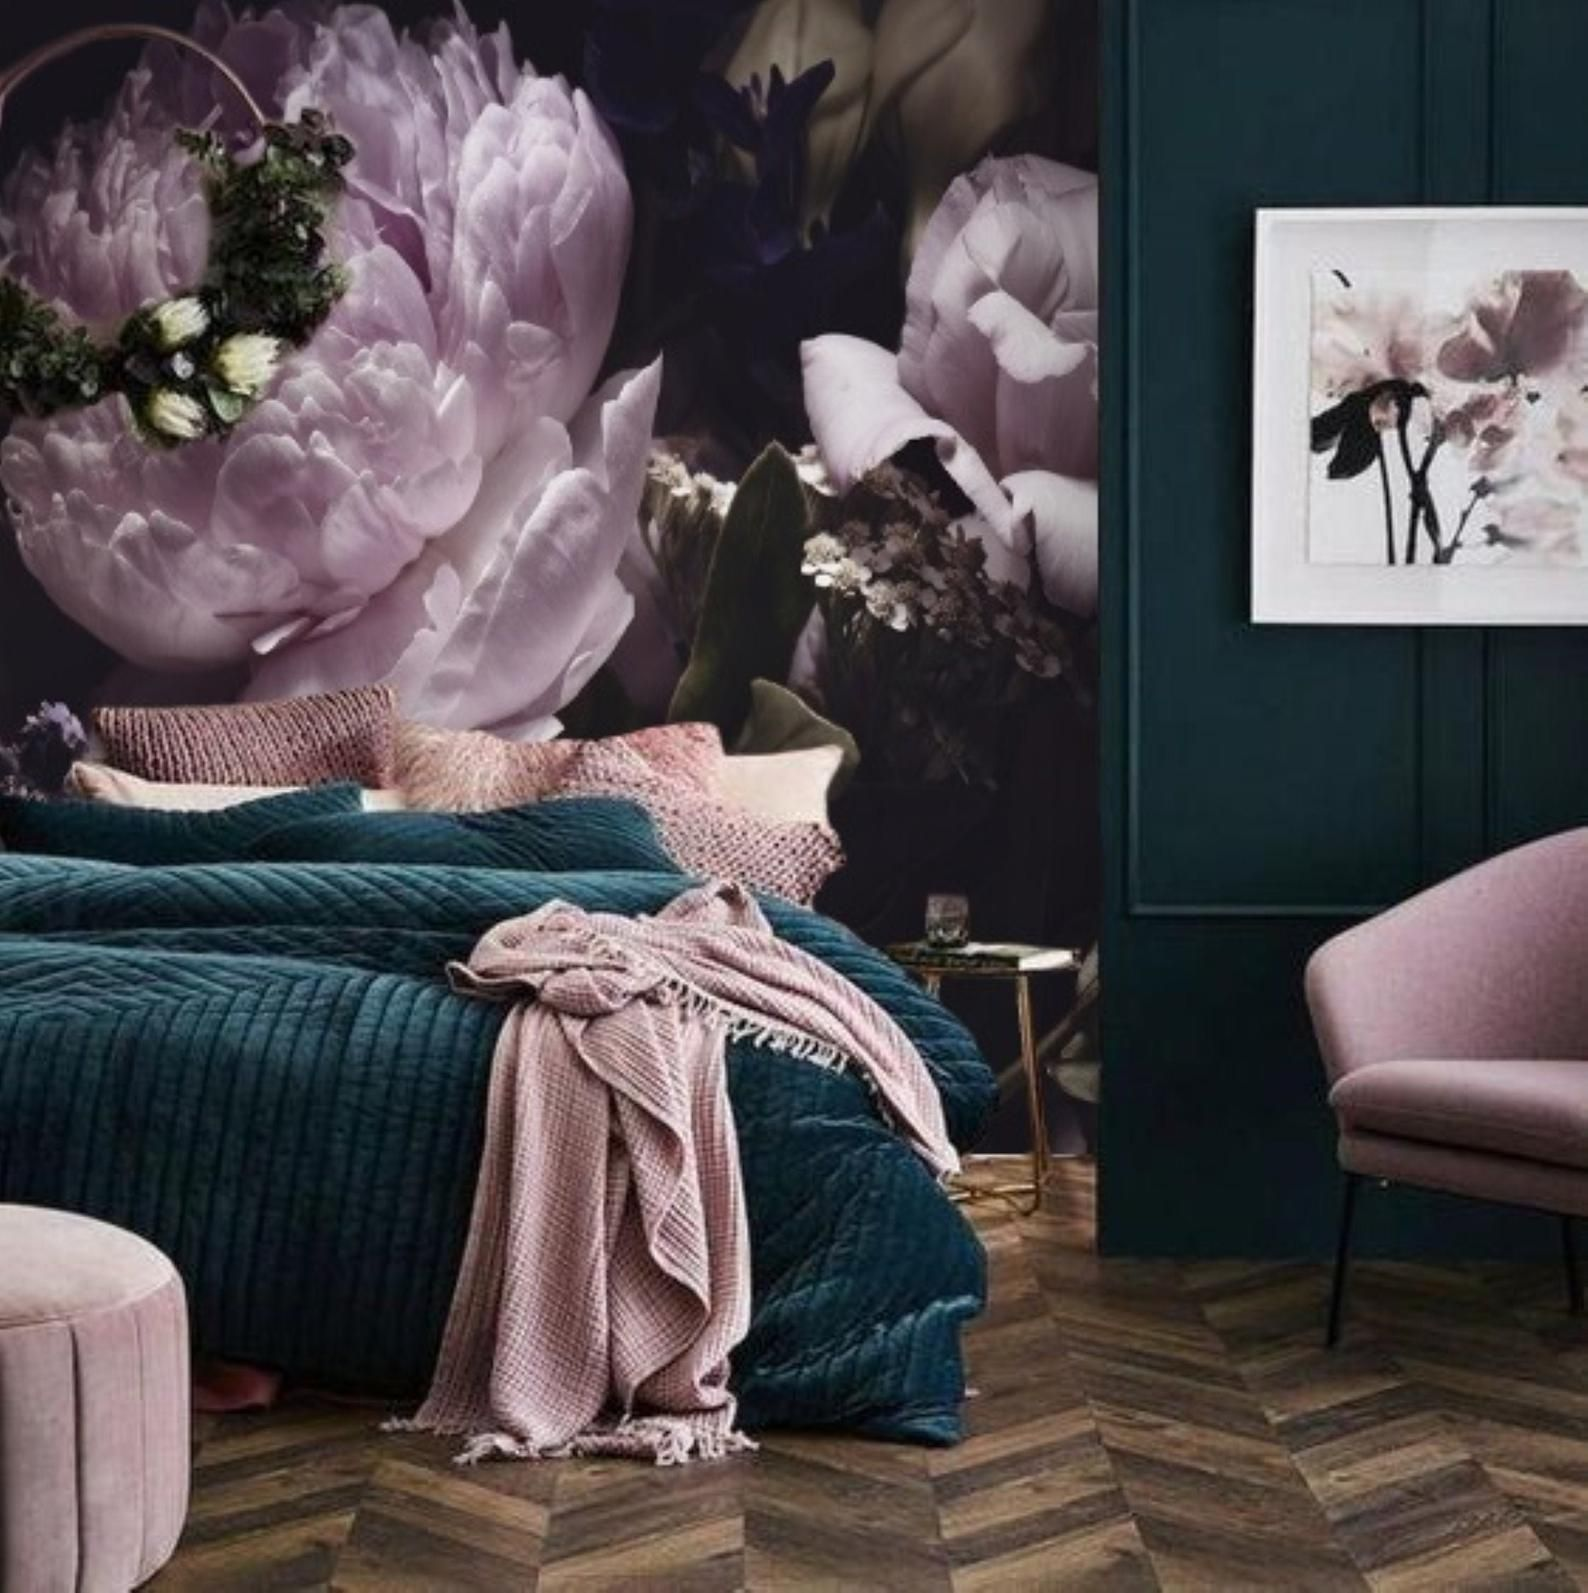 Large Peony On Black Background Removable Wallpaper Peel And Stick Wallpaper Wall Mural Self Adhesive Wallpaper In 2020 Peony Wallpaper Peel And Stick Wallpaper Wallpaper